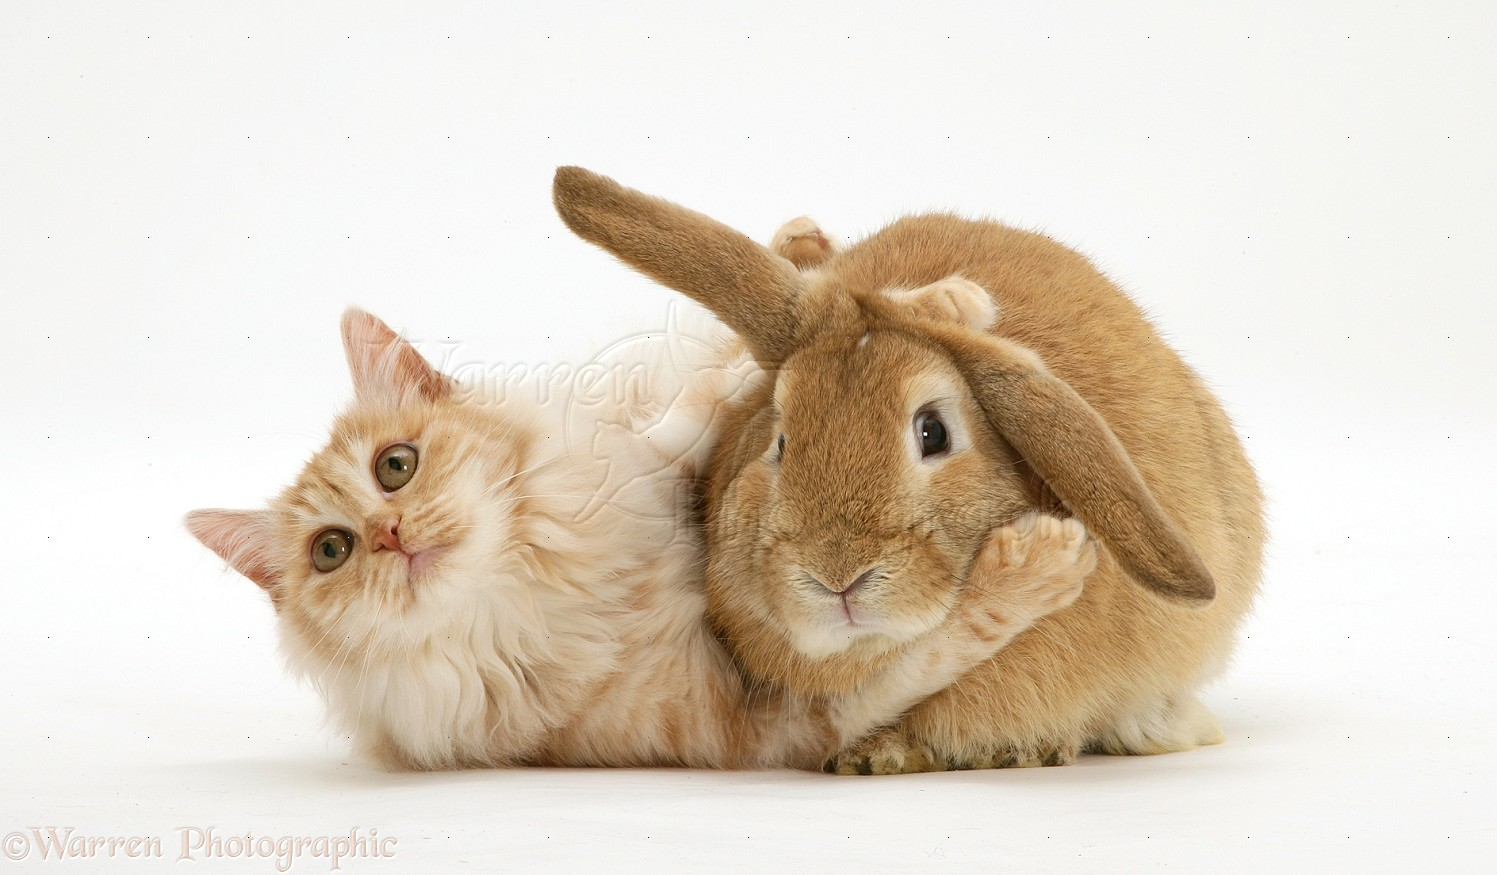 Cute White Baby Rabbits Wallpapers Bunny And Cat Photographsat And Sandy Lop Rabbit Home